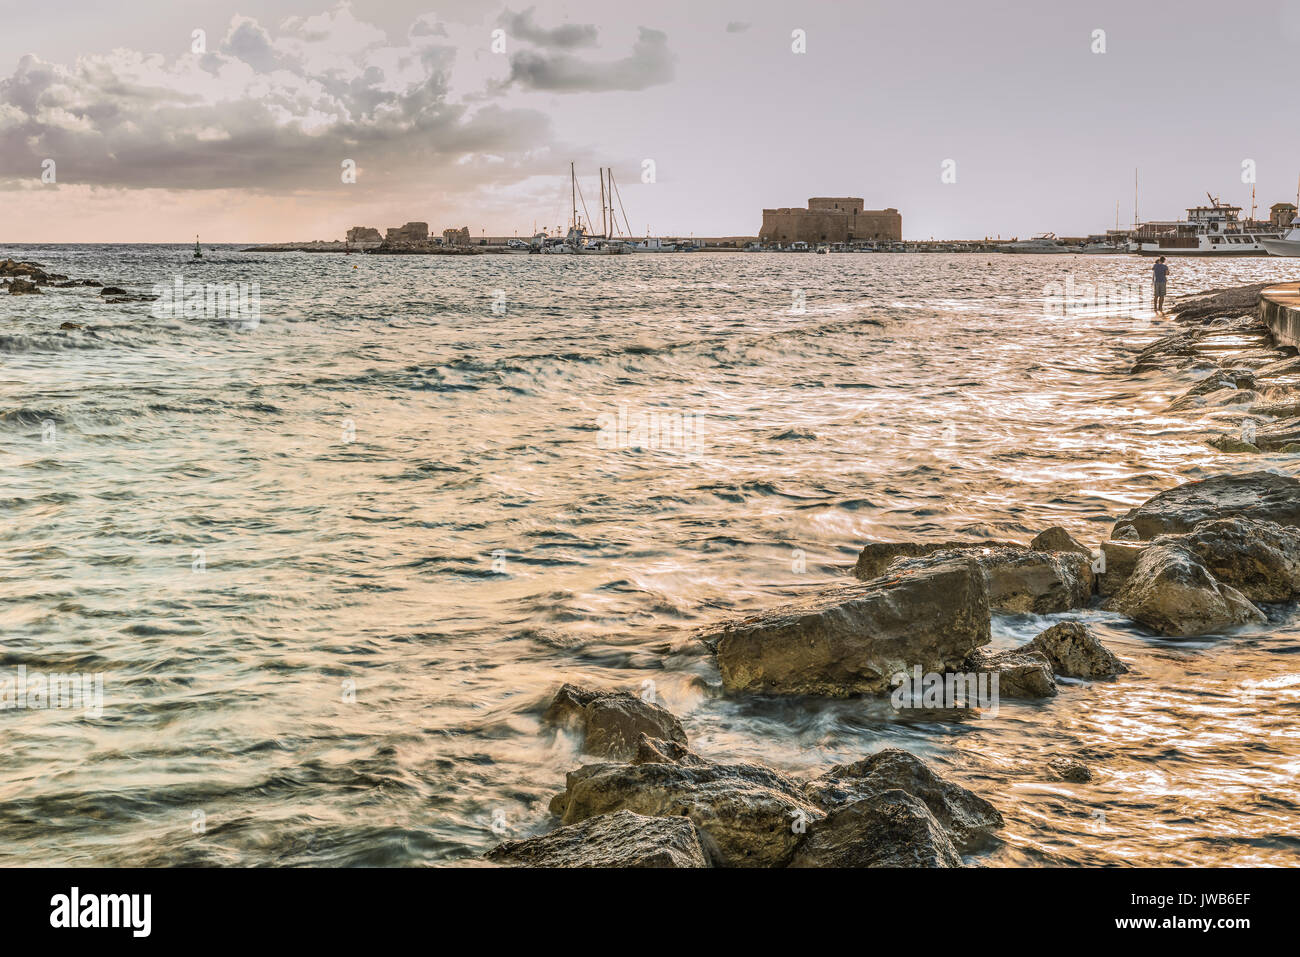 Paphos harbour at sunset. - Stock Image